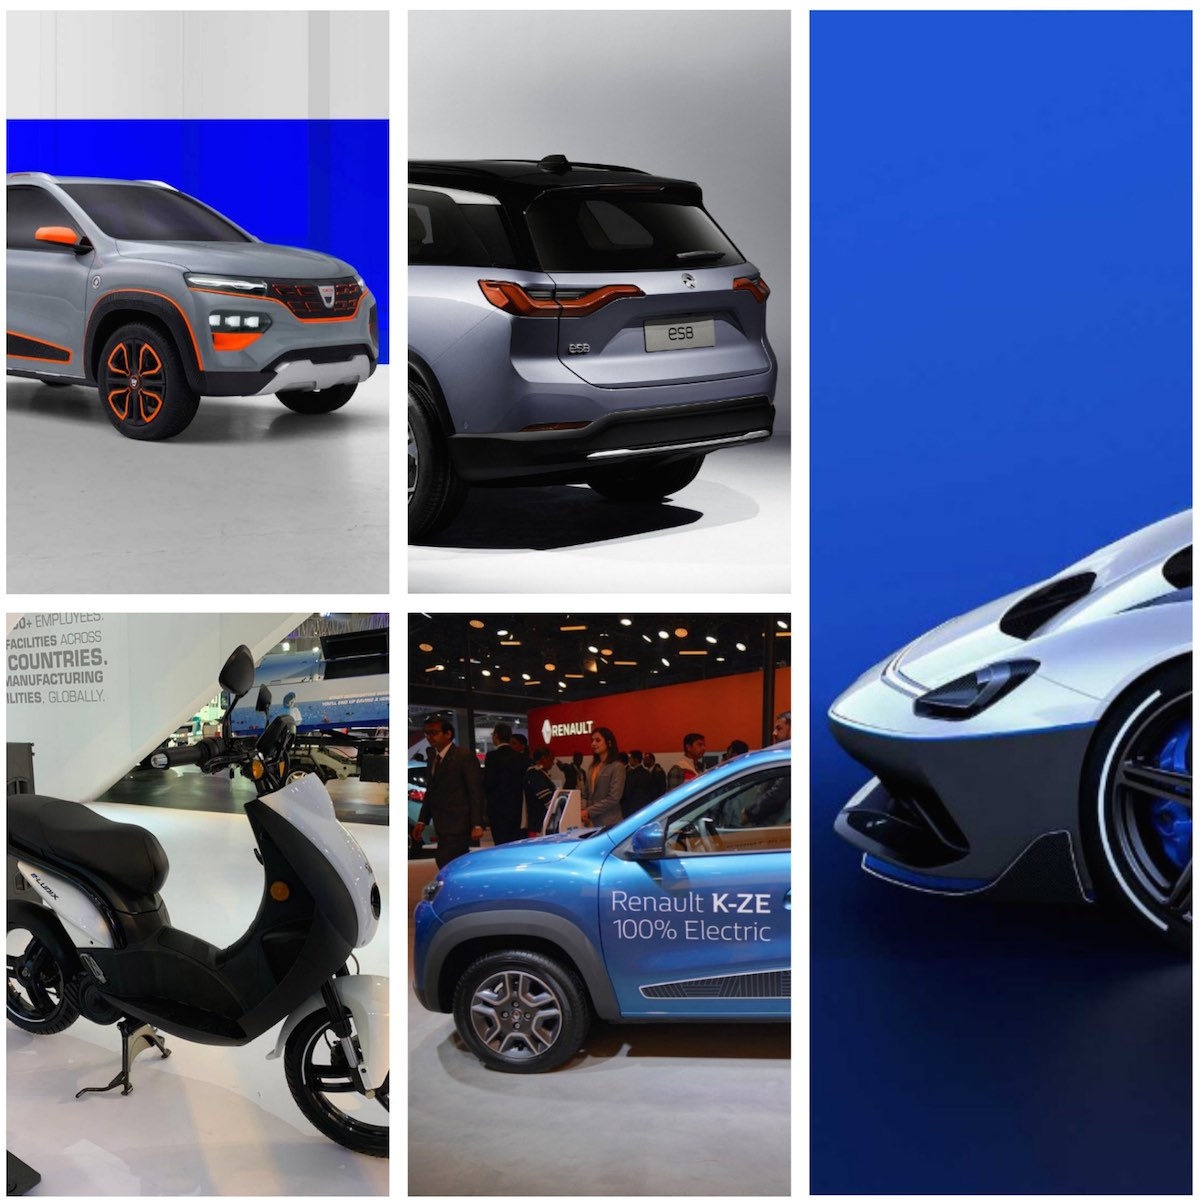 Global electric vehicles with strong Indian connections